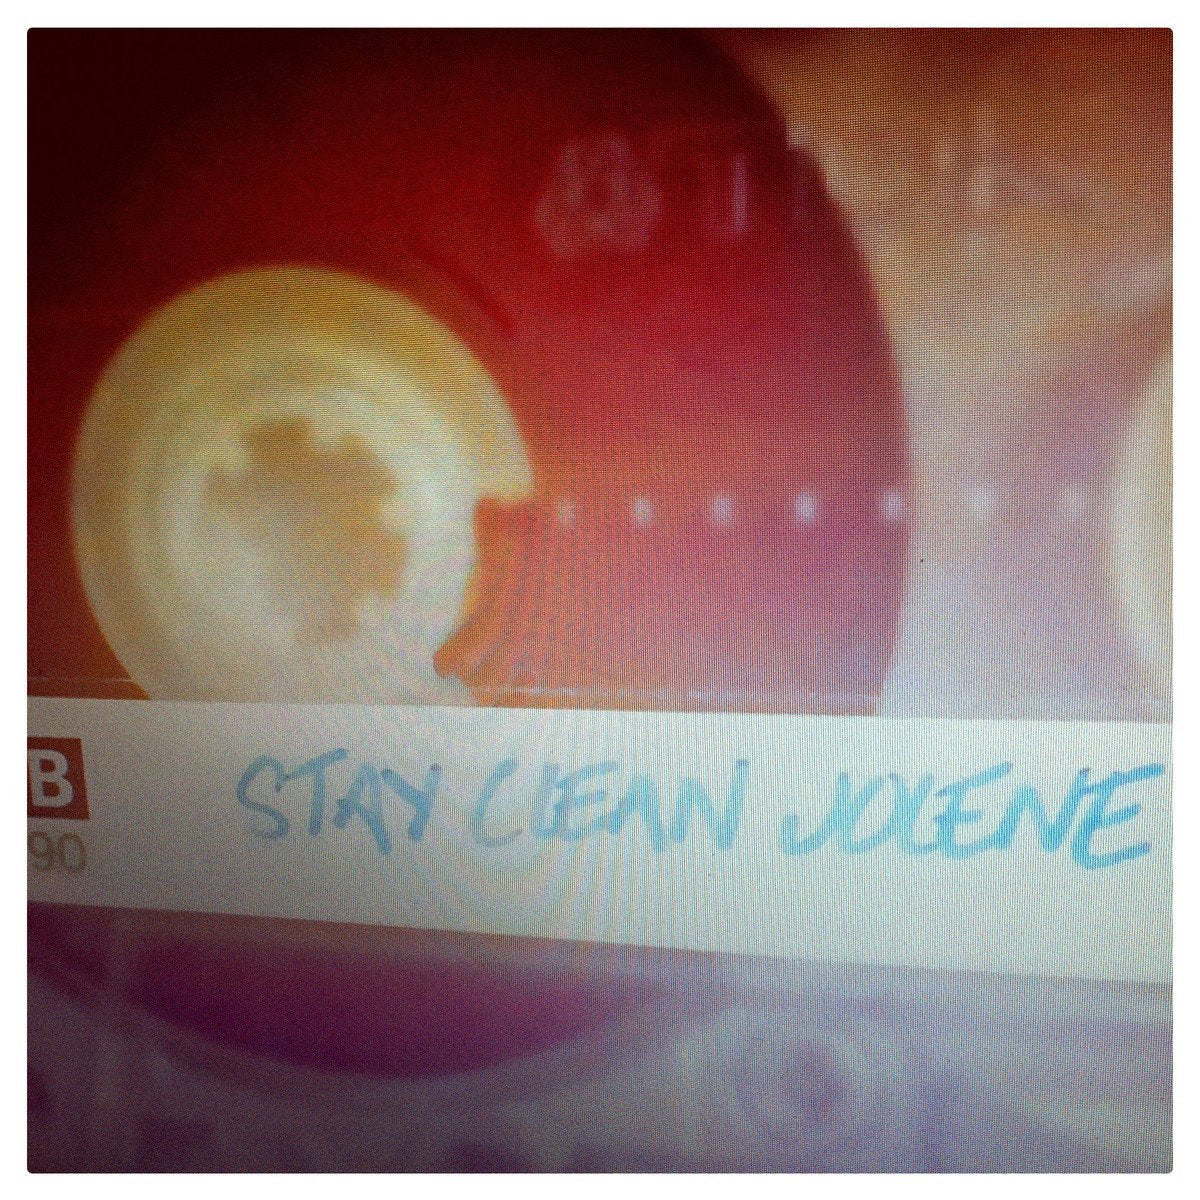 "Stay Clean Jolene - 3 songs 7"" & d/l"